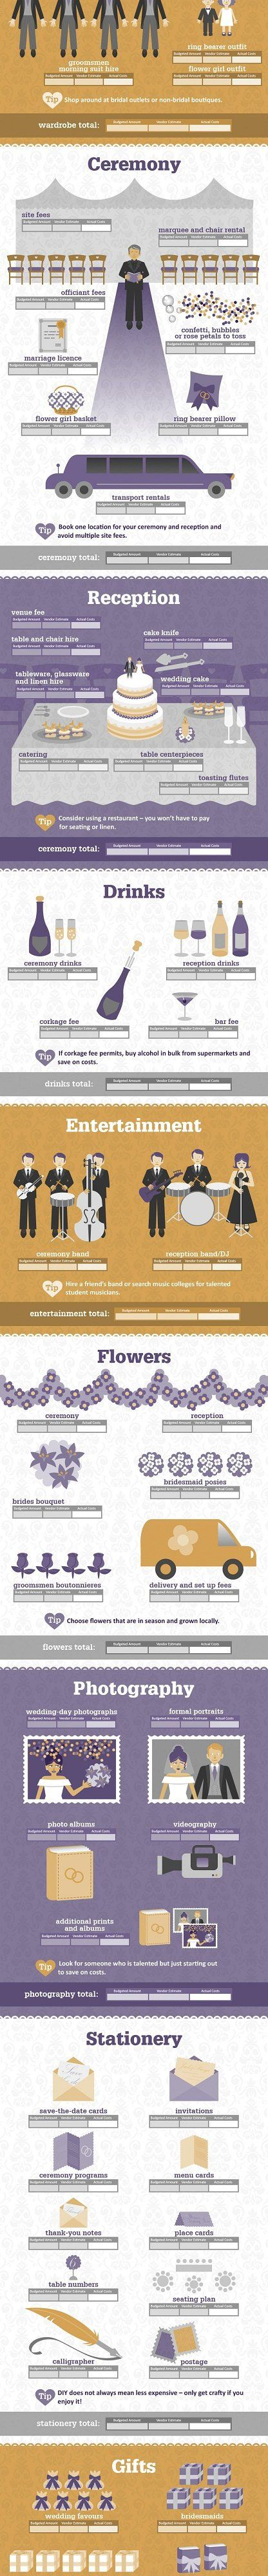 Ultimate wedding checklist . Thought of you jenn!